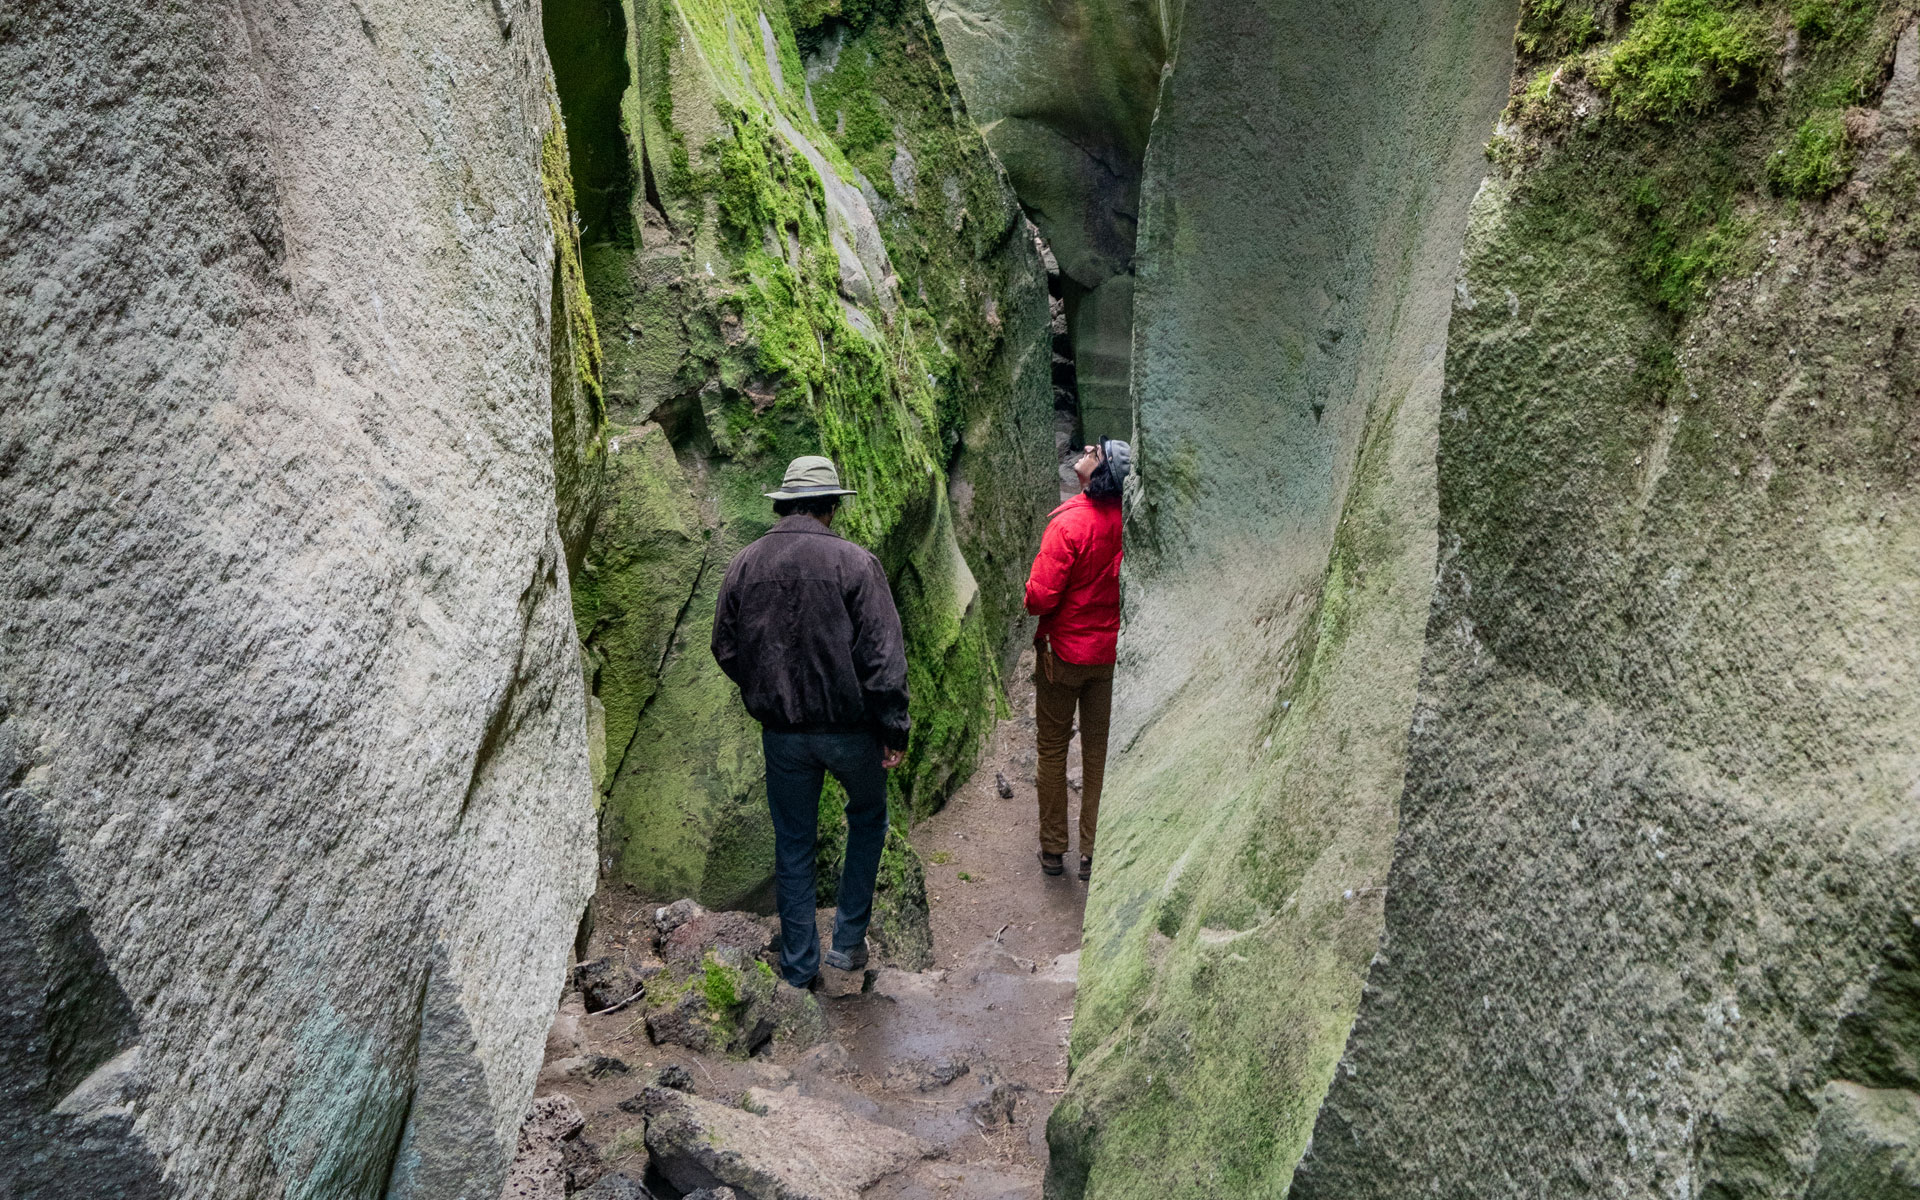 Two men walking in Crack on the Ground in Oregon